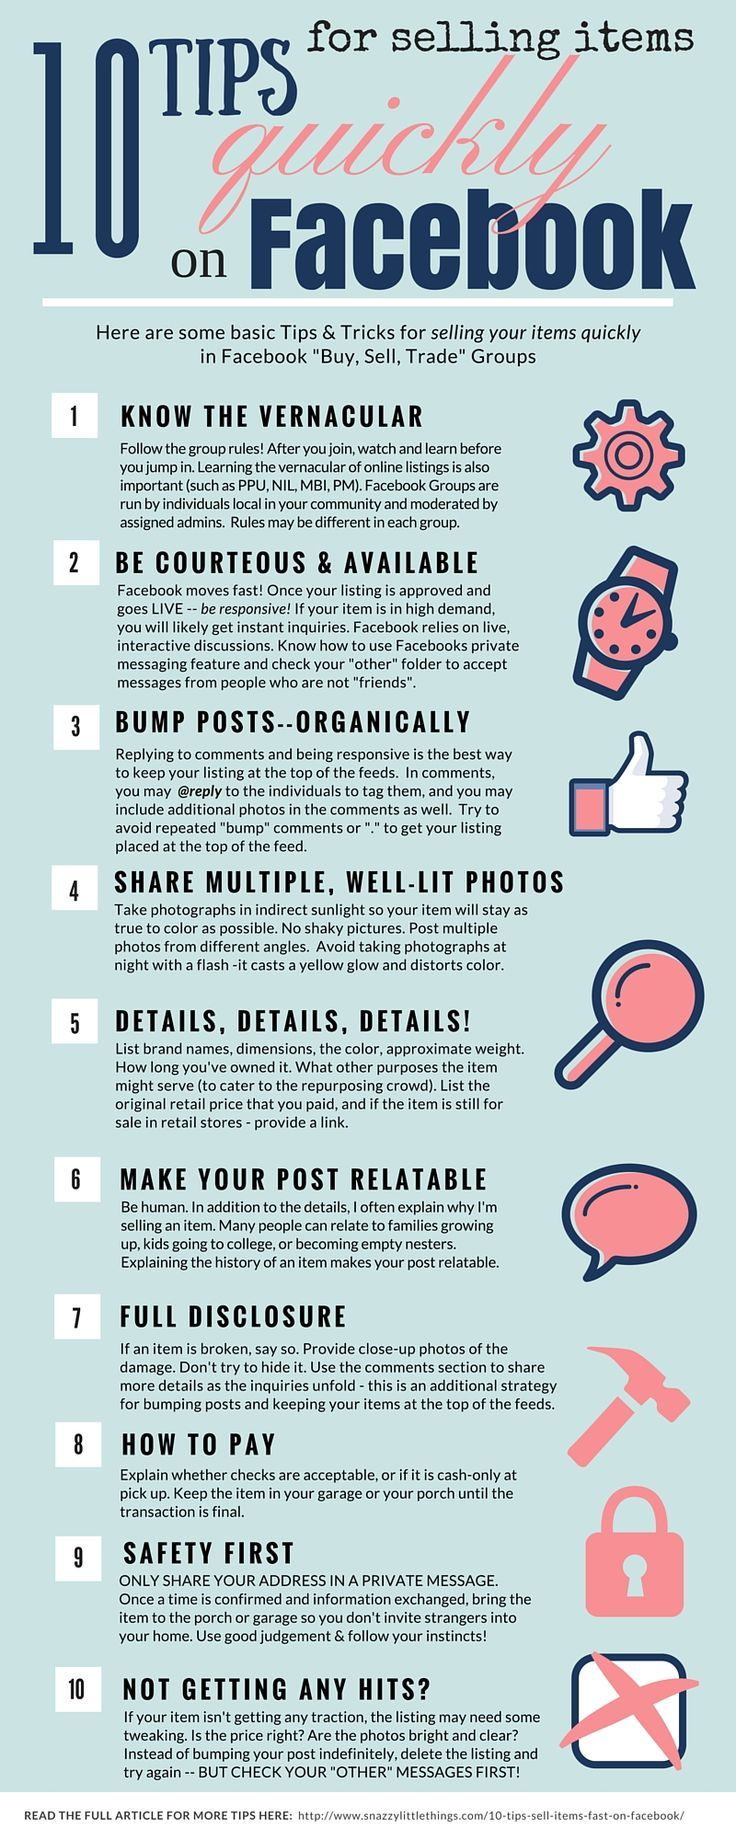 d054dfe1a81d8cf8f5088f1d29fdb508 - How To Get People To Your Facebook Business Page